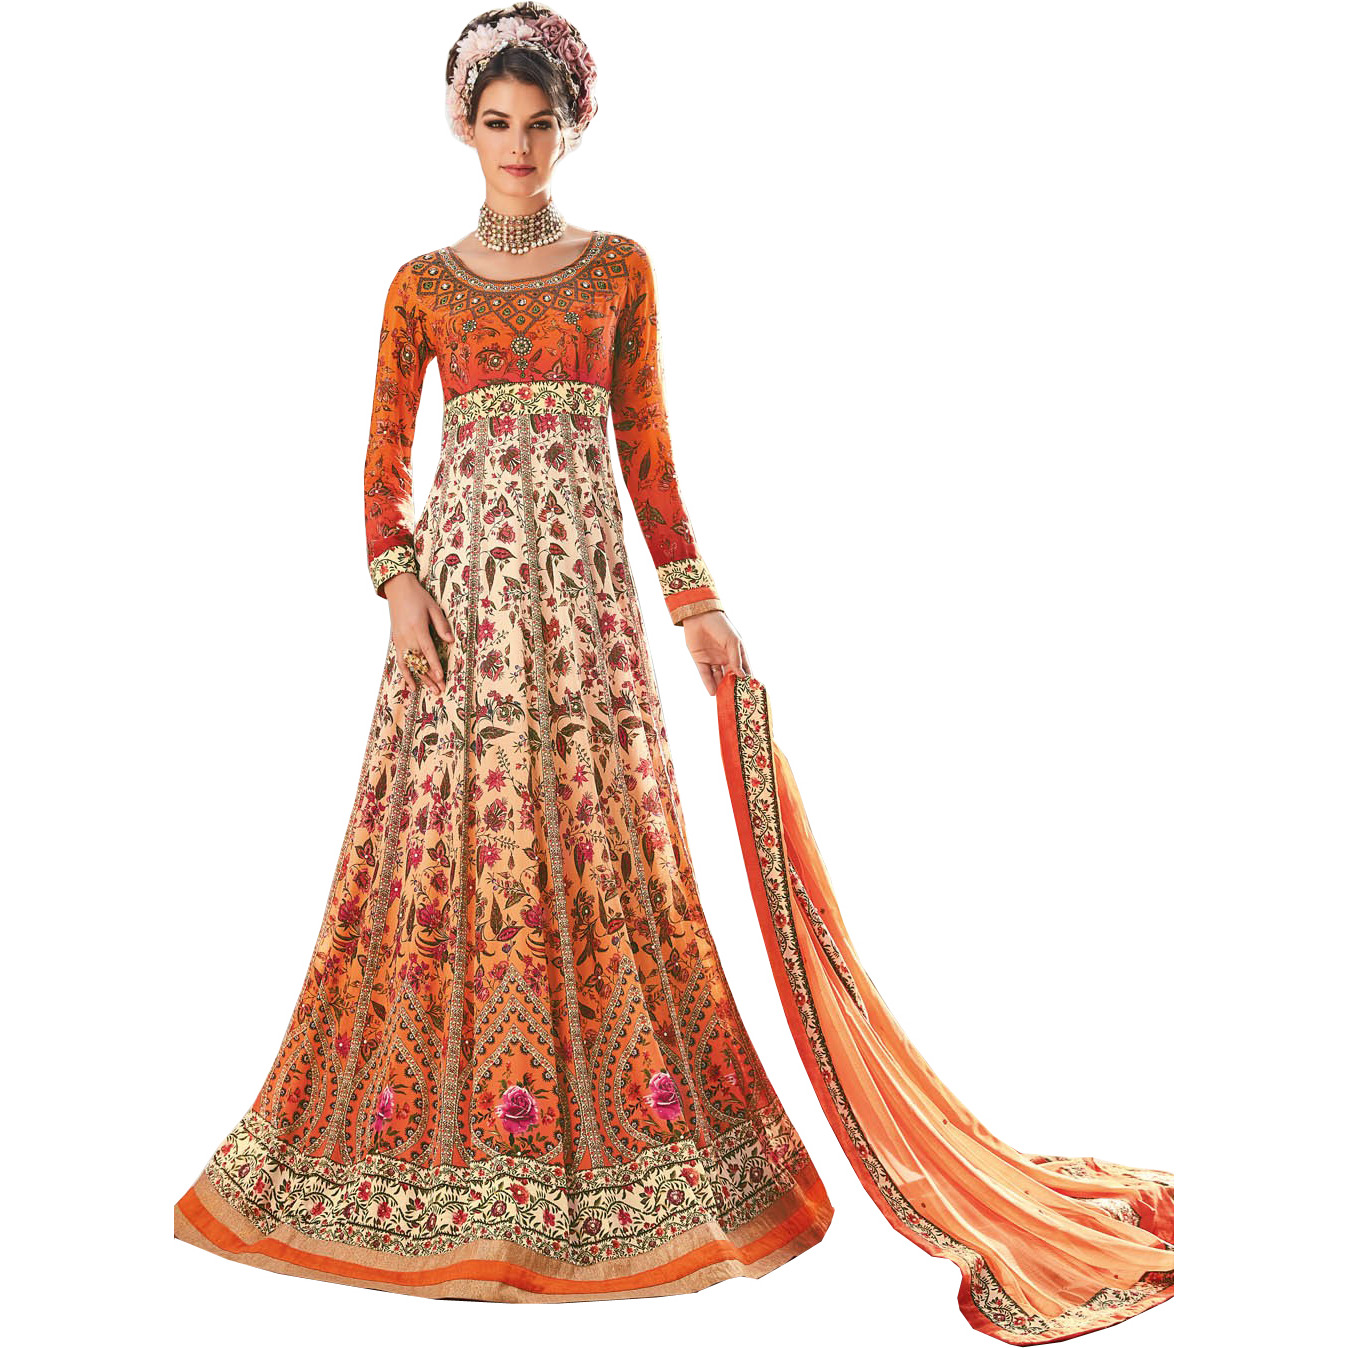 Orange and Peach Designer Floor-Length Anarkali Suit with Floral Print and Crystals All-Over